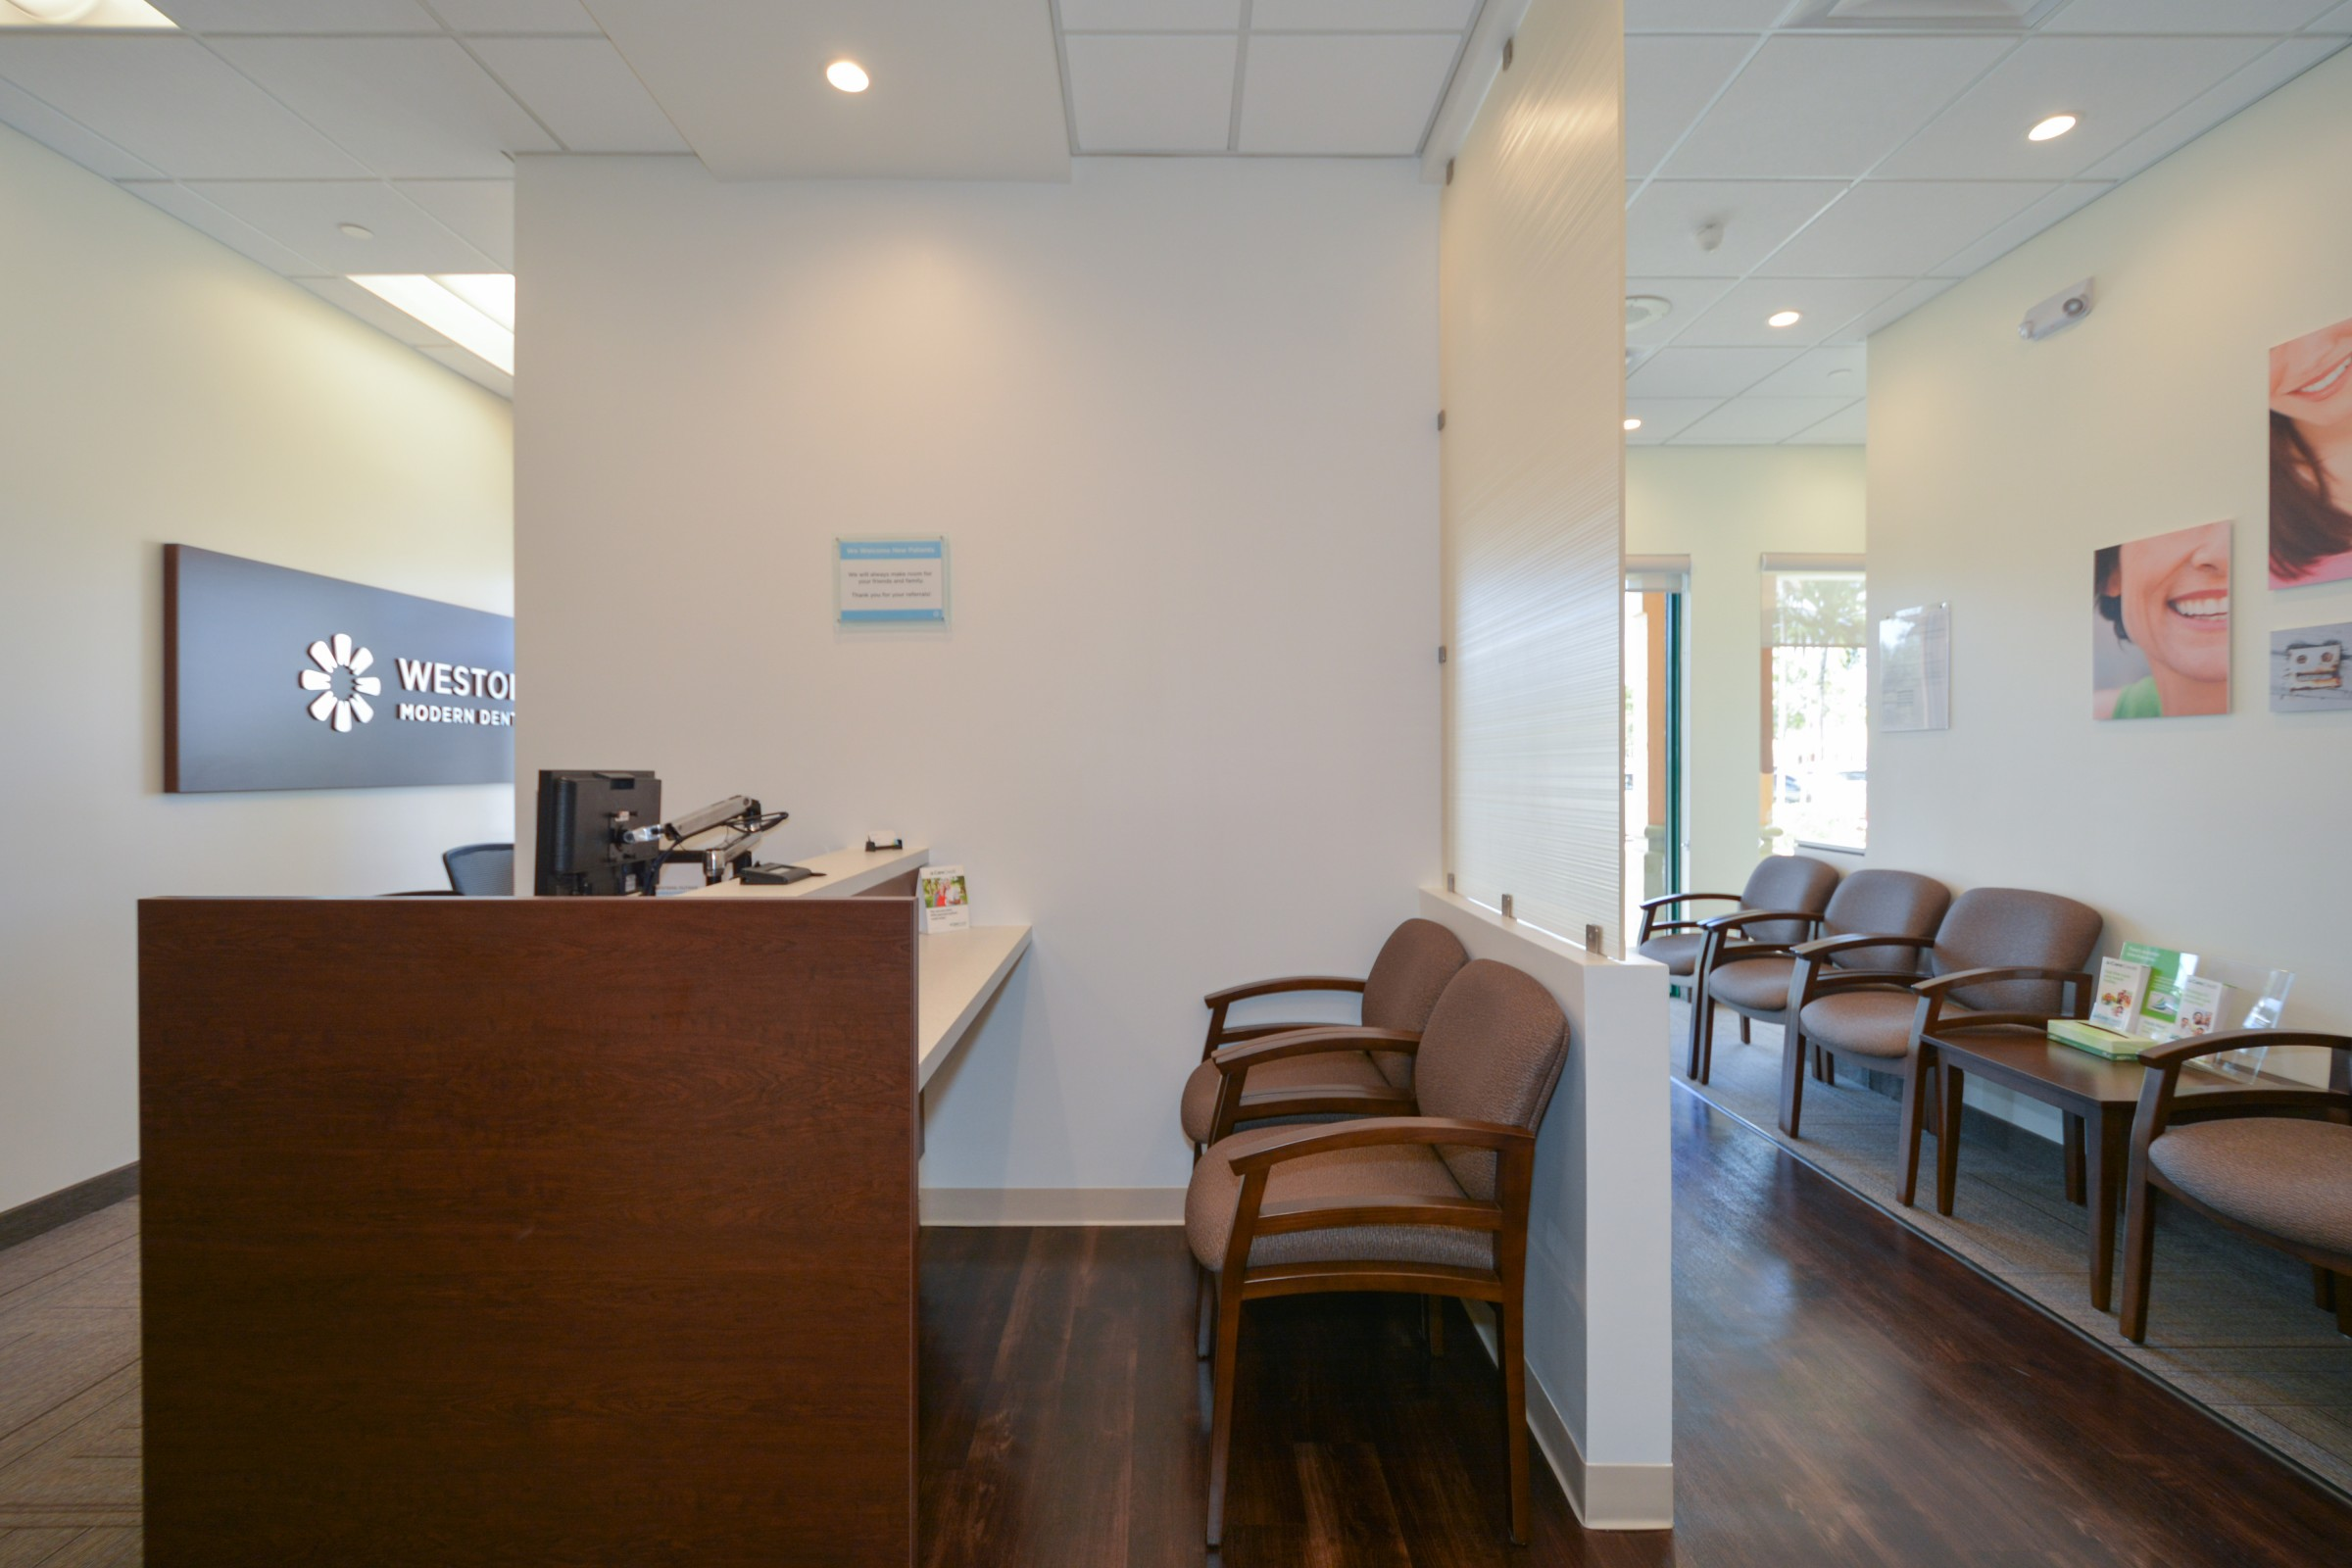 Weston Modern Dentistry image 3